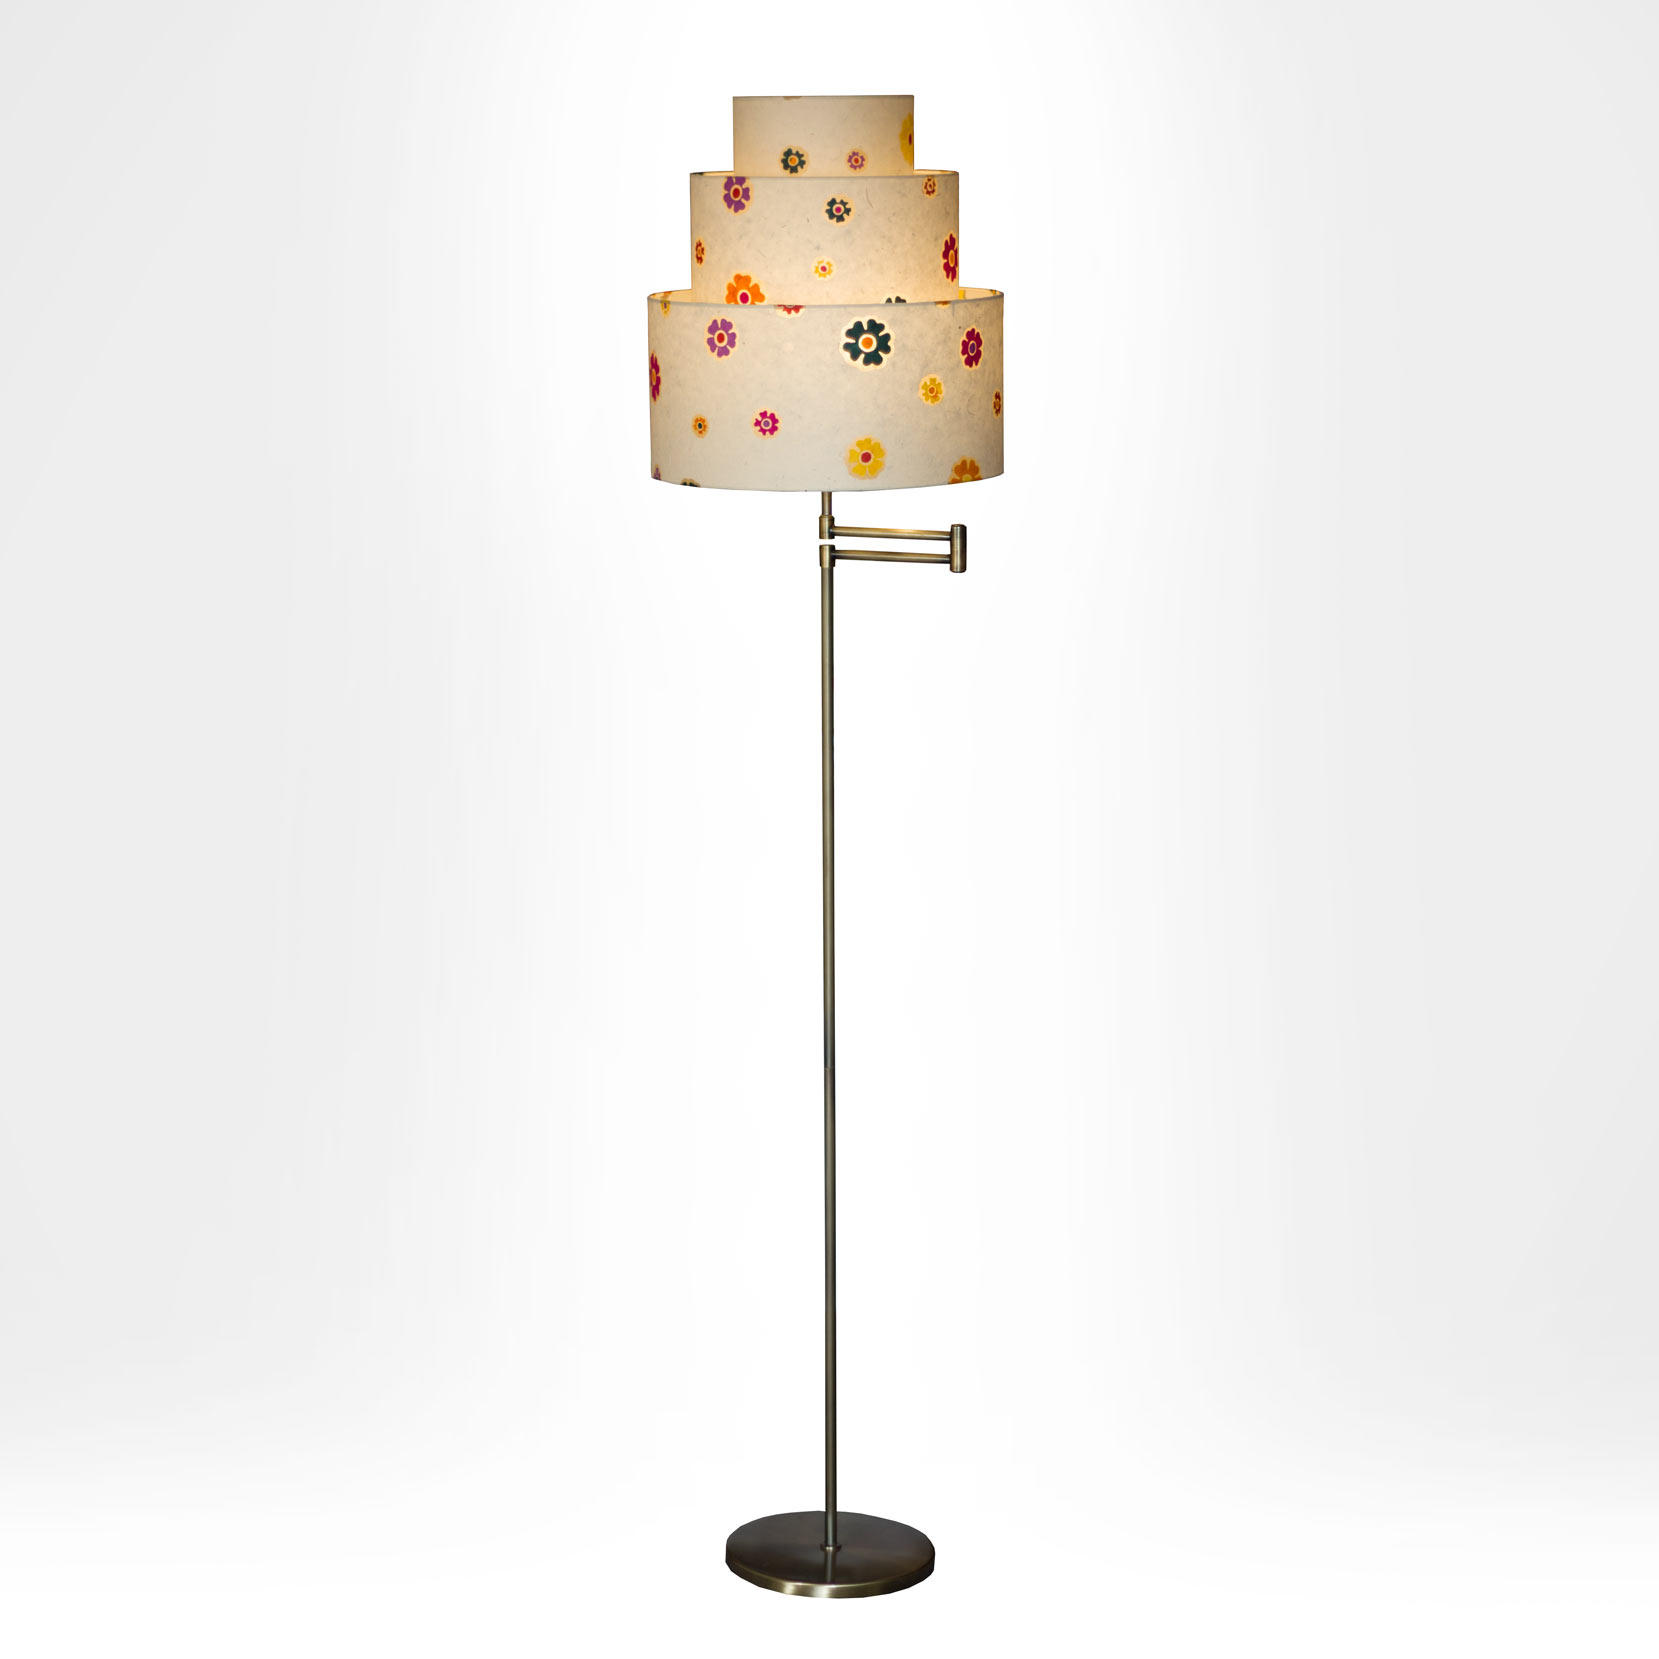 Handmade 3 tier lamp shade on double swing arm floor lamp for 3 tier floor lamp